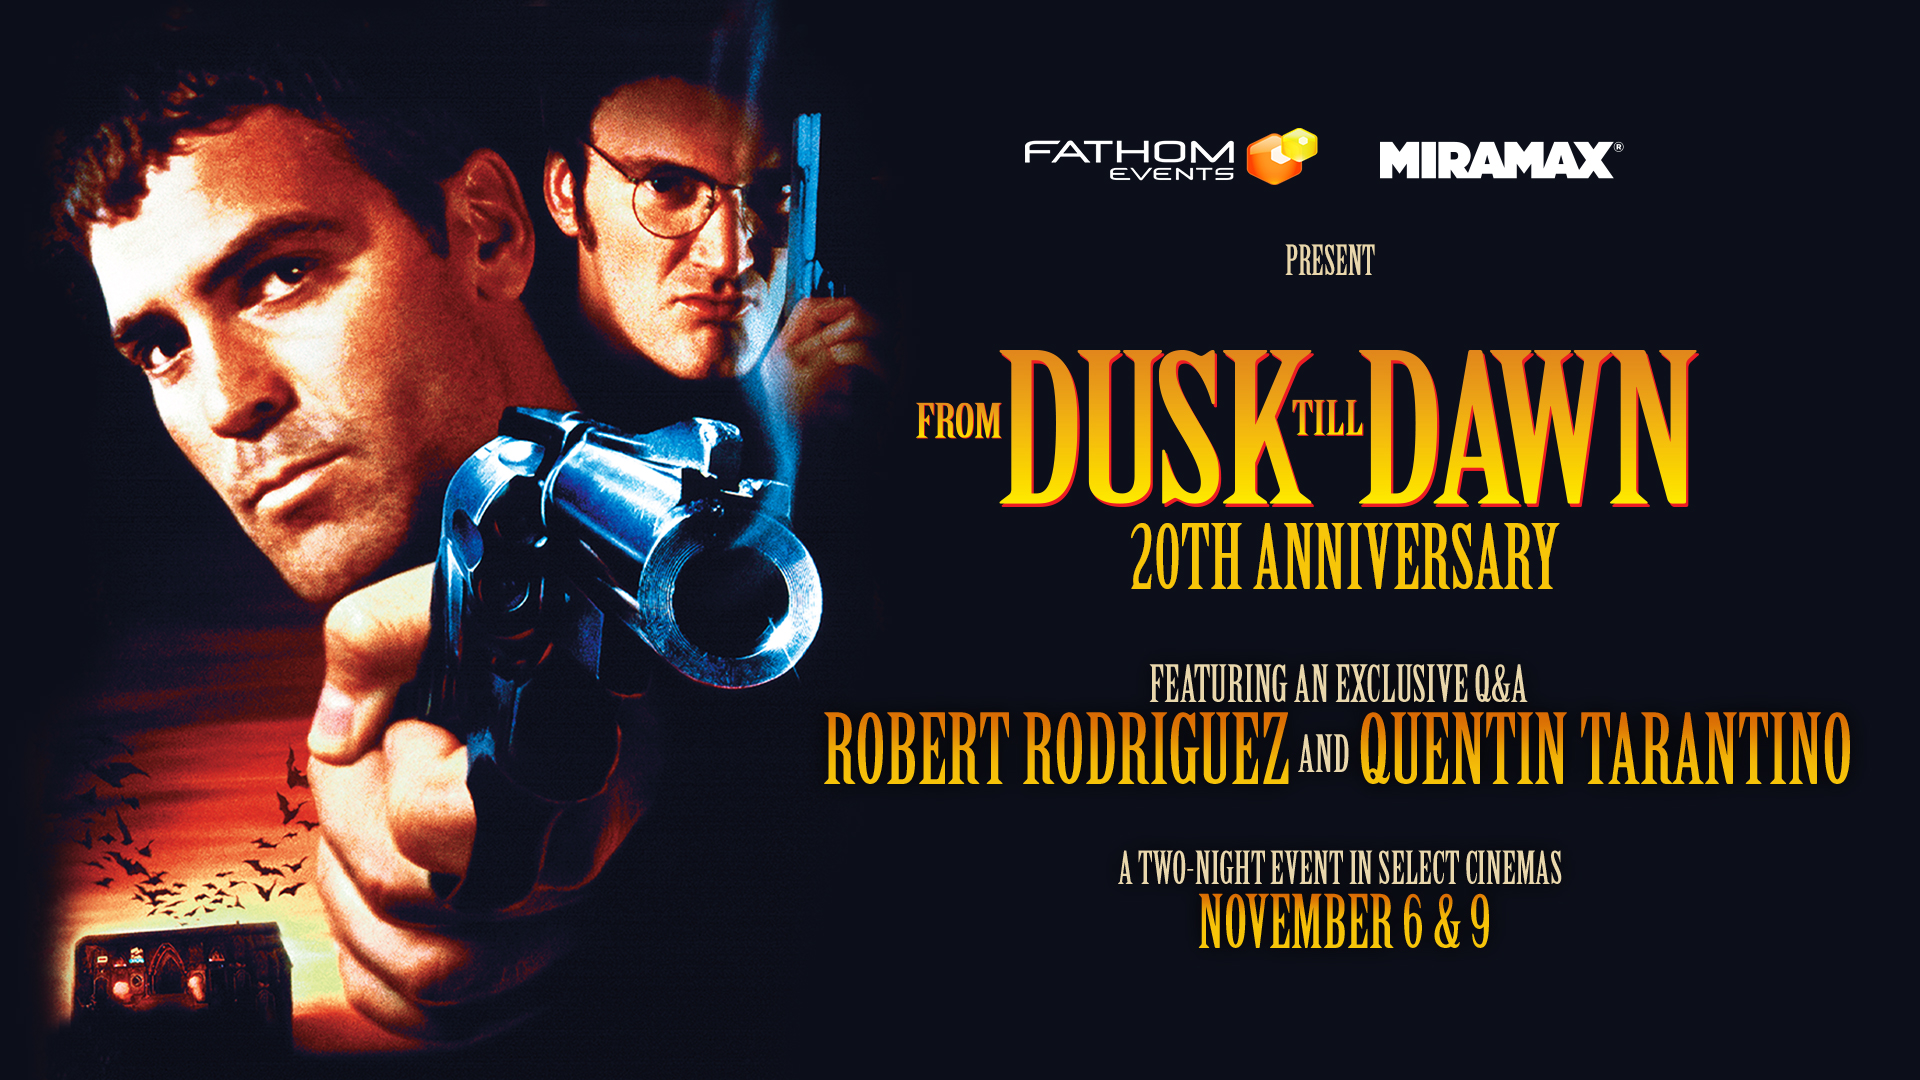 From Dusk Till Dawn 20th Anniversary - Fathom Events Trailer